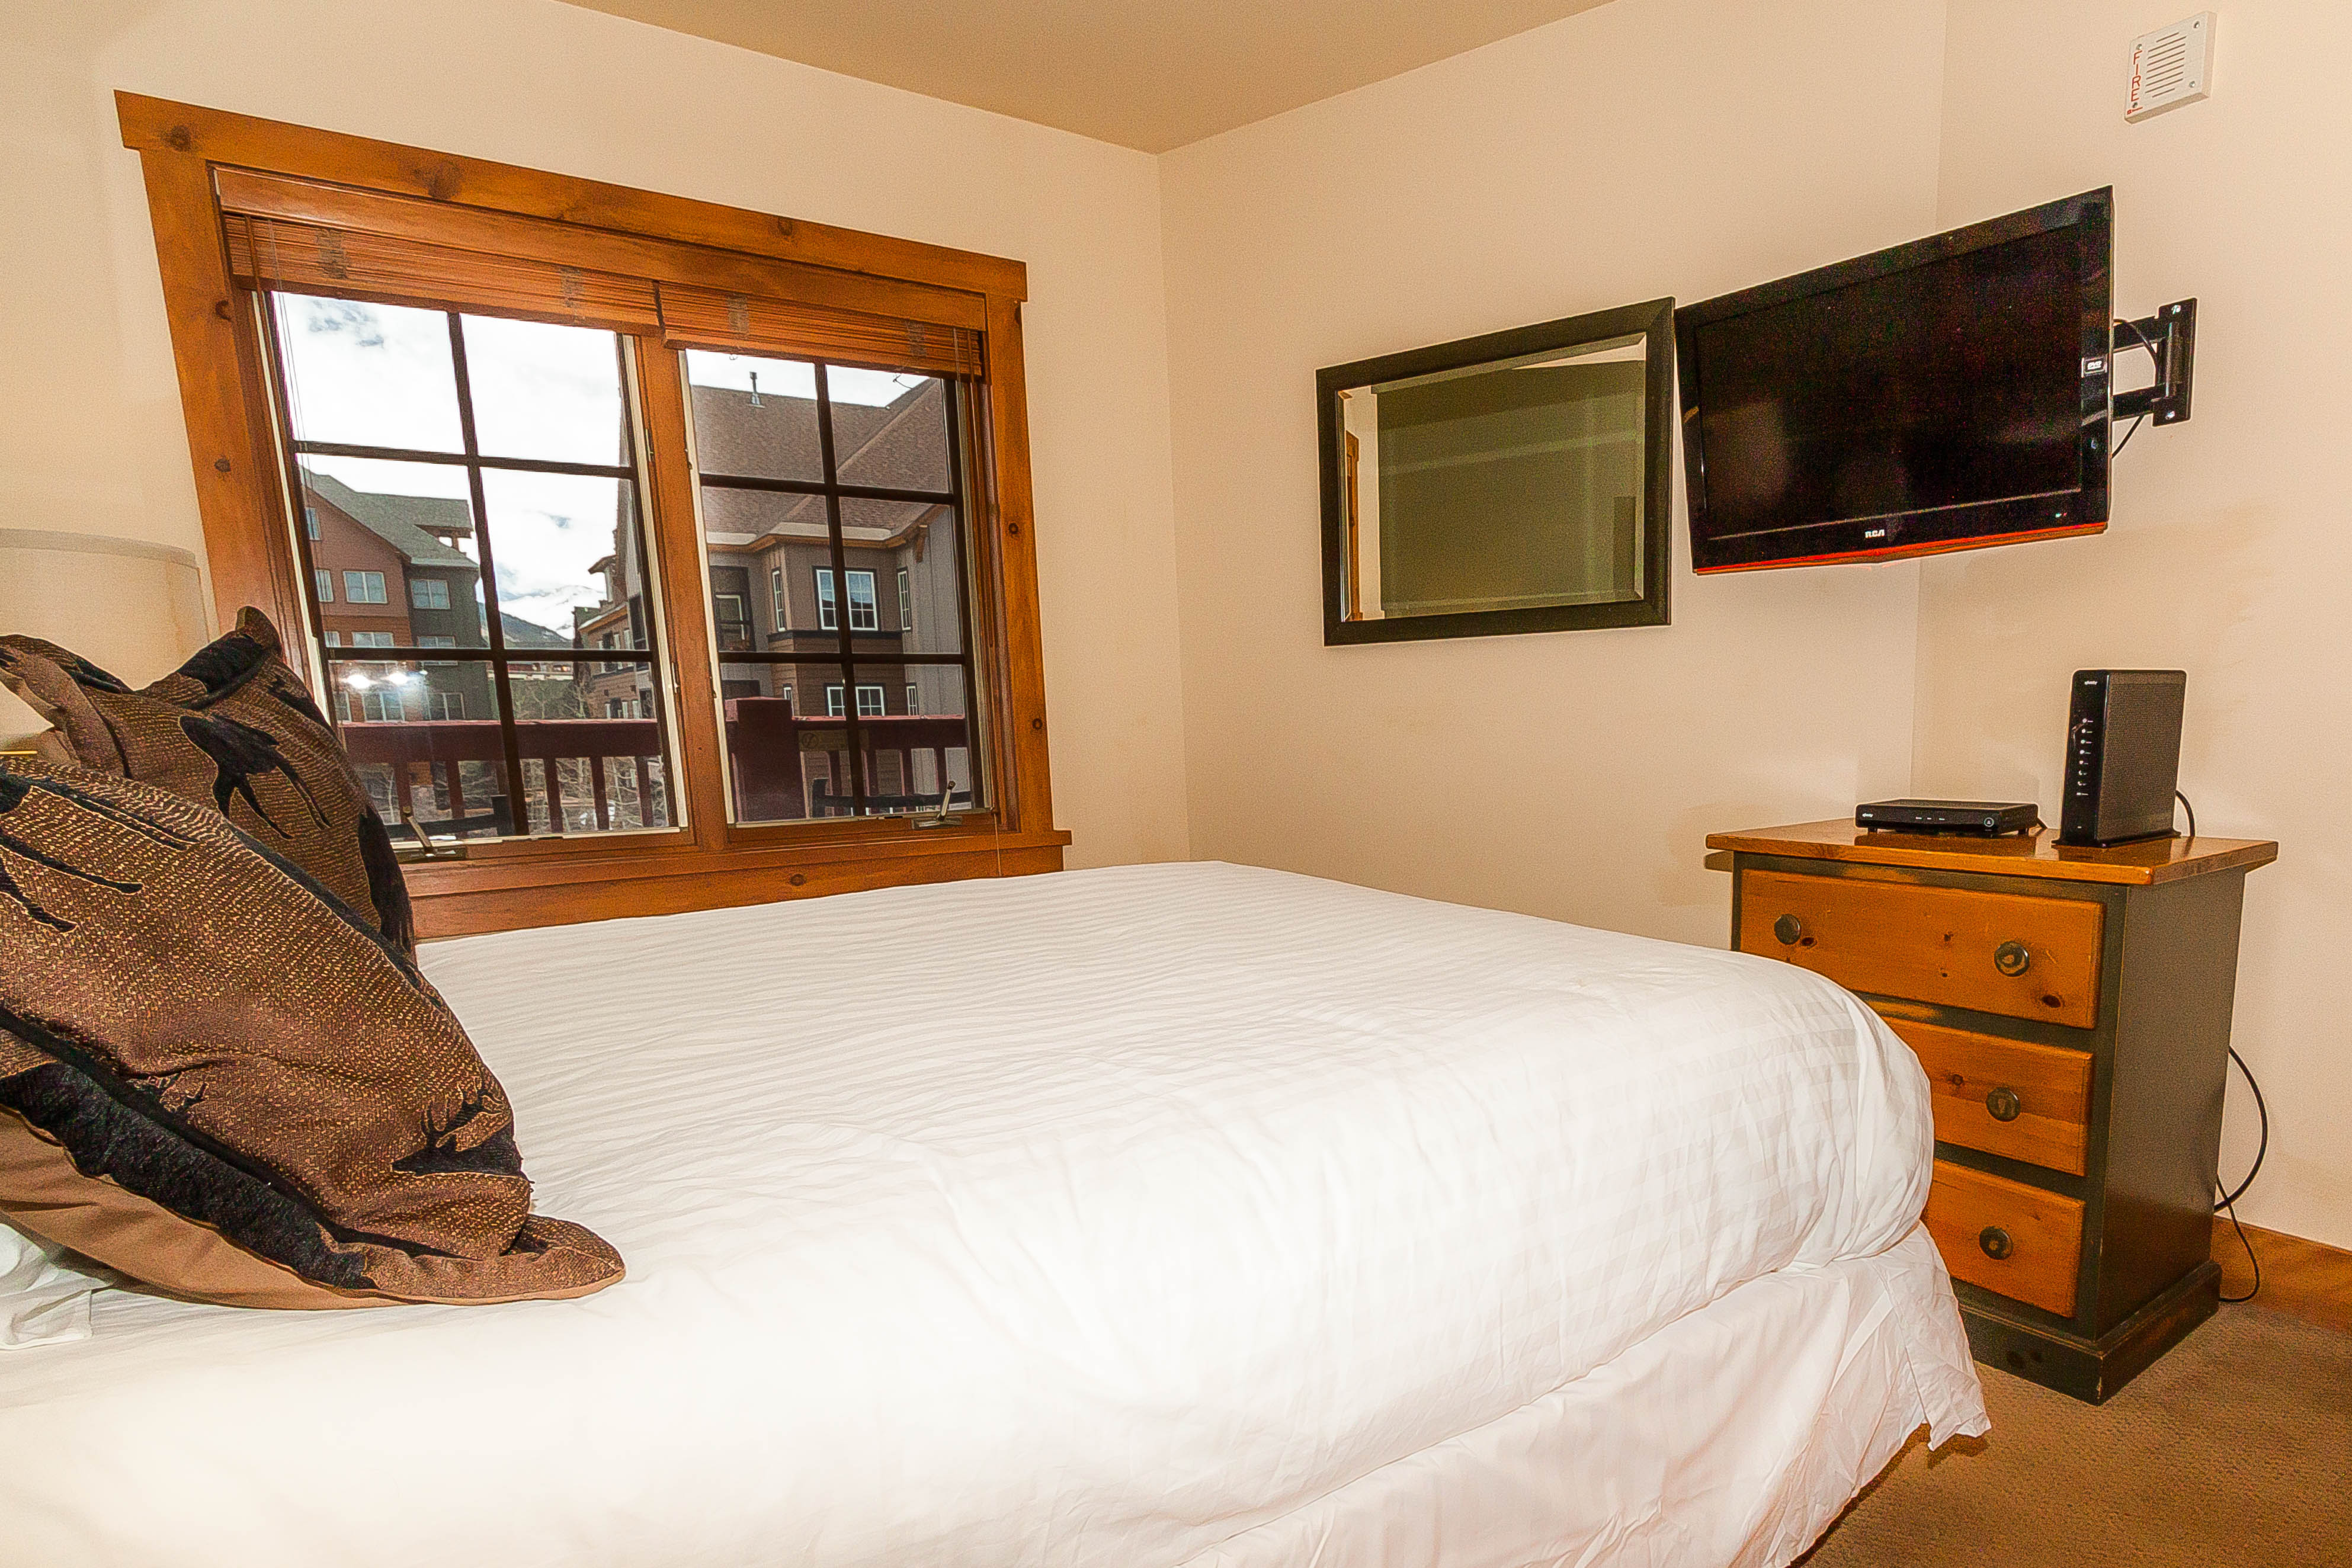 The bedroom features a queen-sized bed with Ivory White Bedding and a mounted flat screen TV.